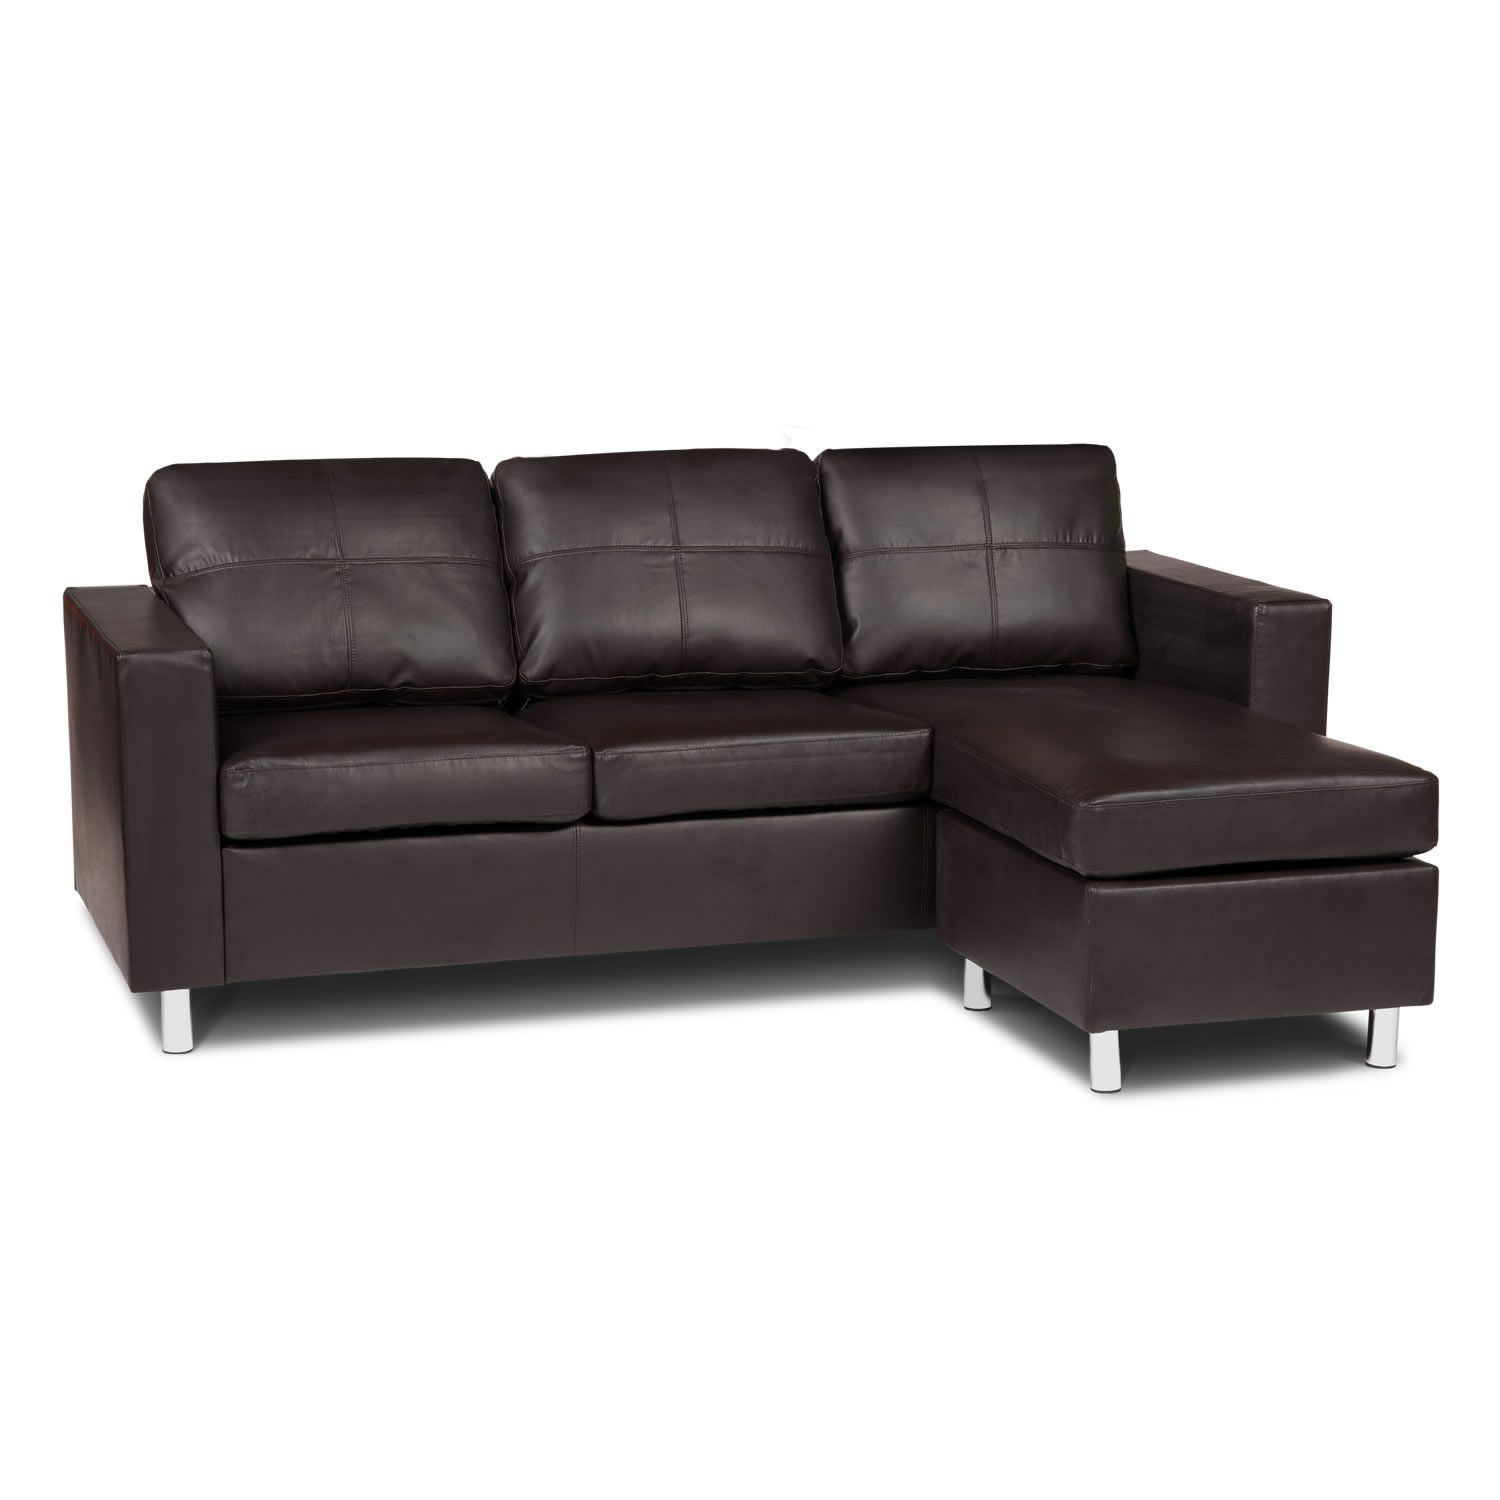 Zara Reversible Faux Leather Corner Sofa Next Day Delivery